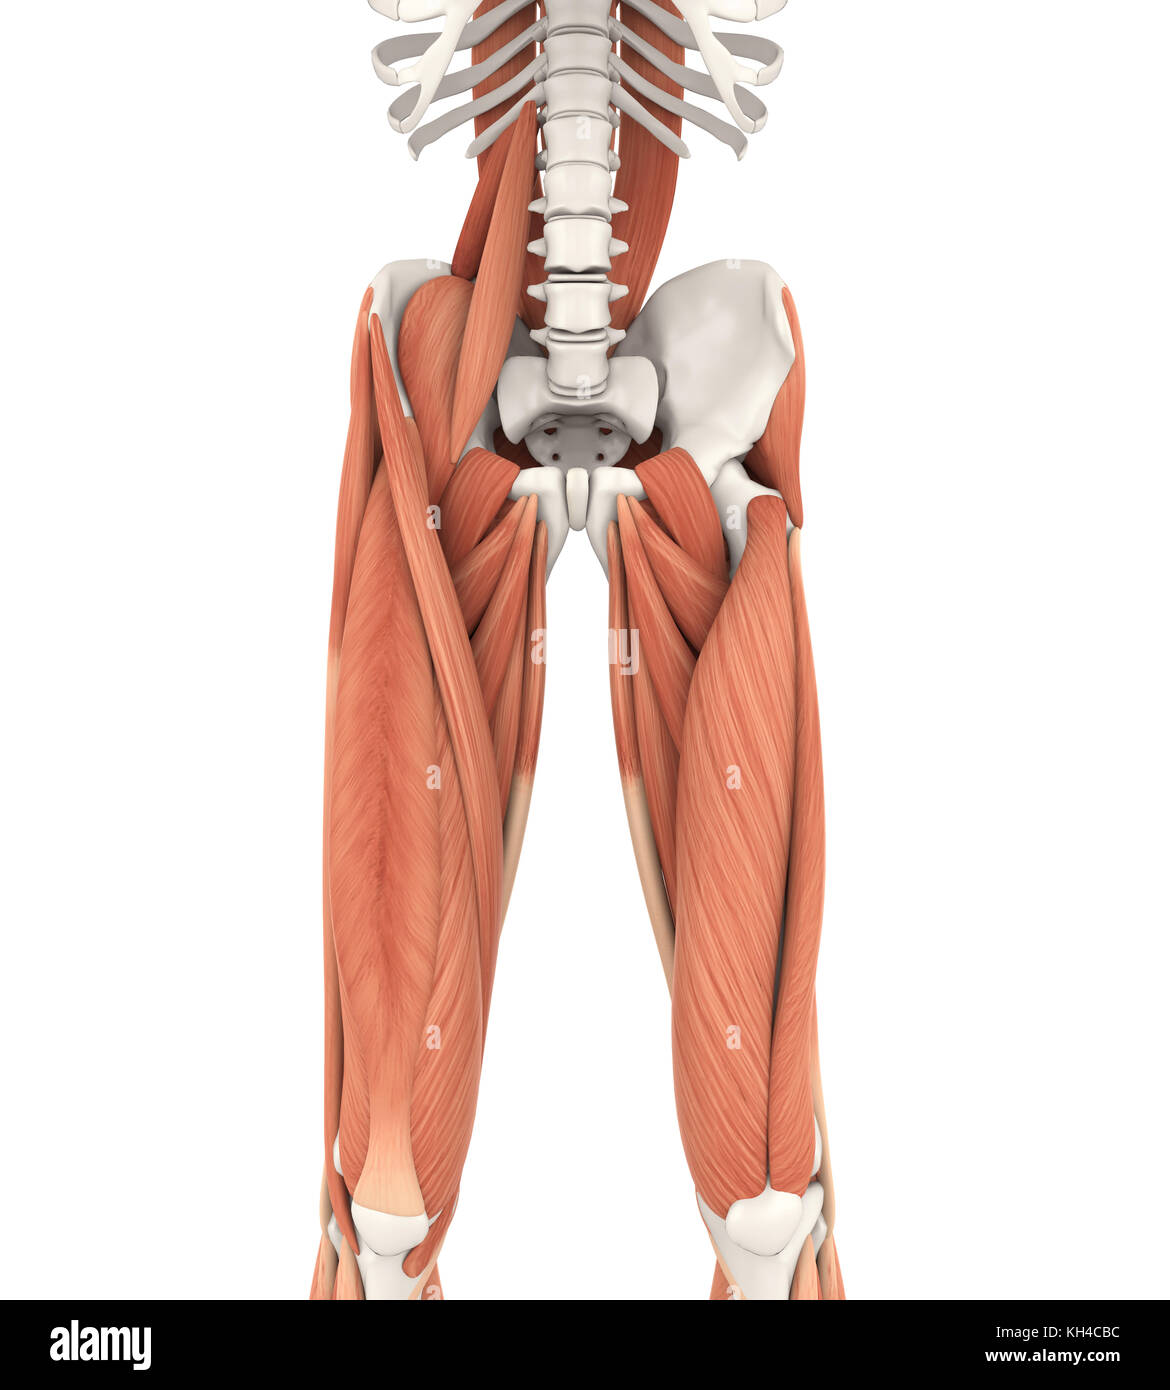 Upper Legs And Psoas Muscles Anatomy Stock Photo 165440000 Alamy